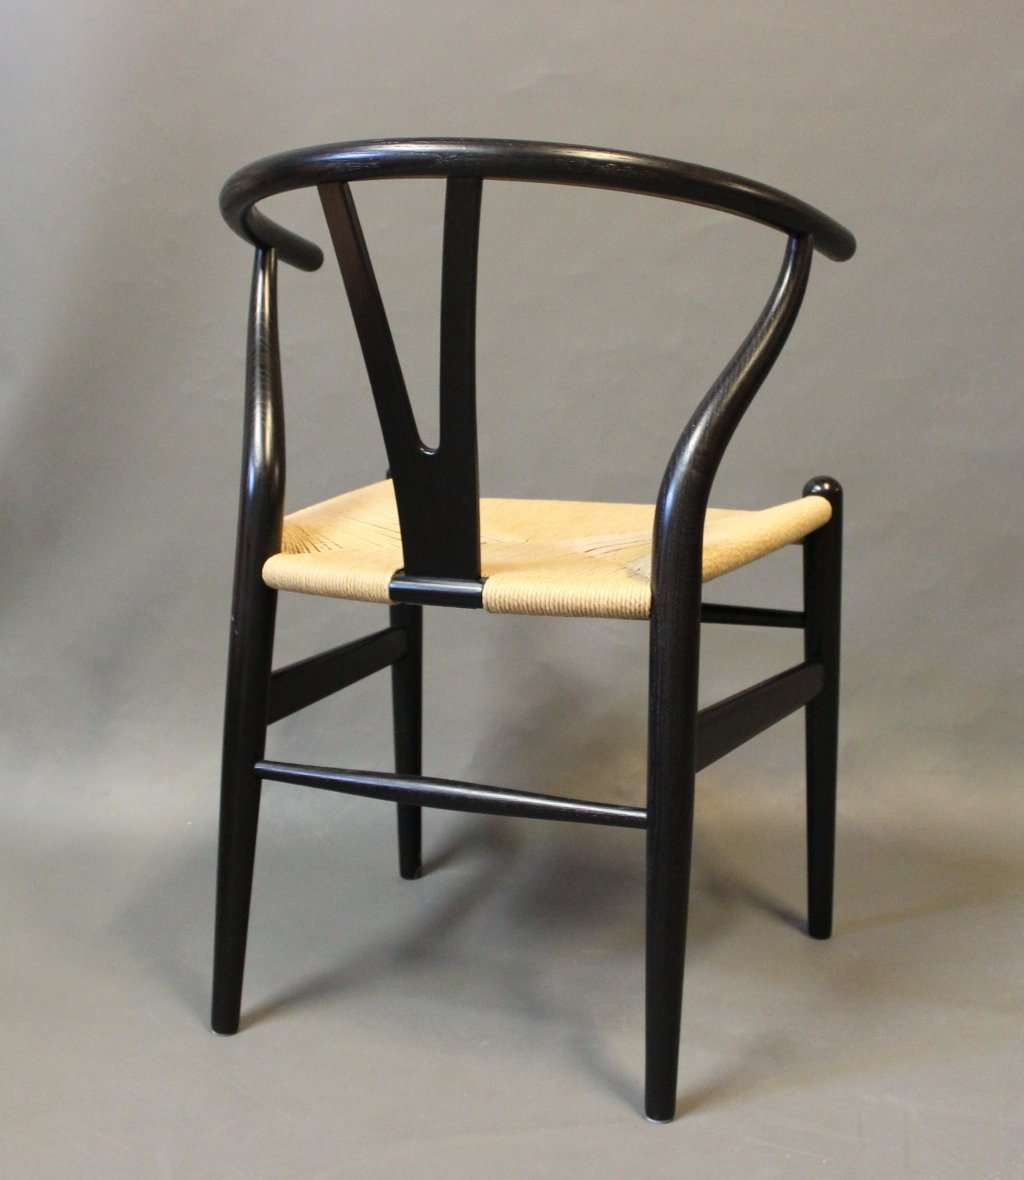 Vintage Model Ch24 Y Chairs By Hans J Wegner For Carl Hansen Son Set Of 4 For Sale At Pamono